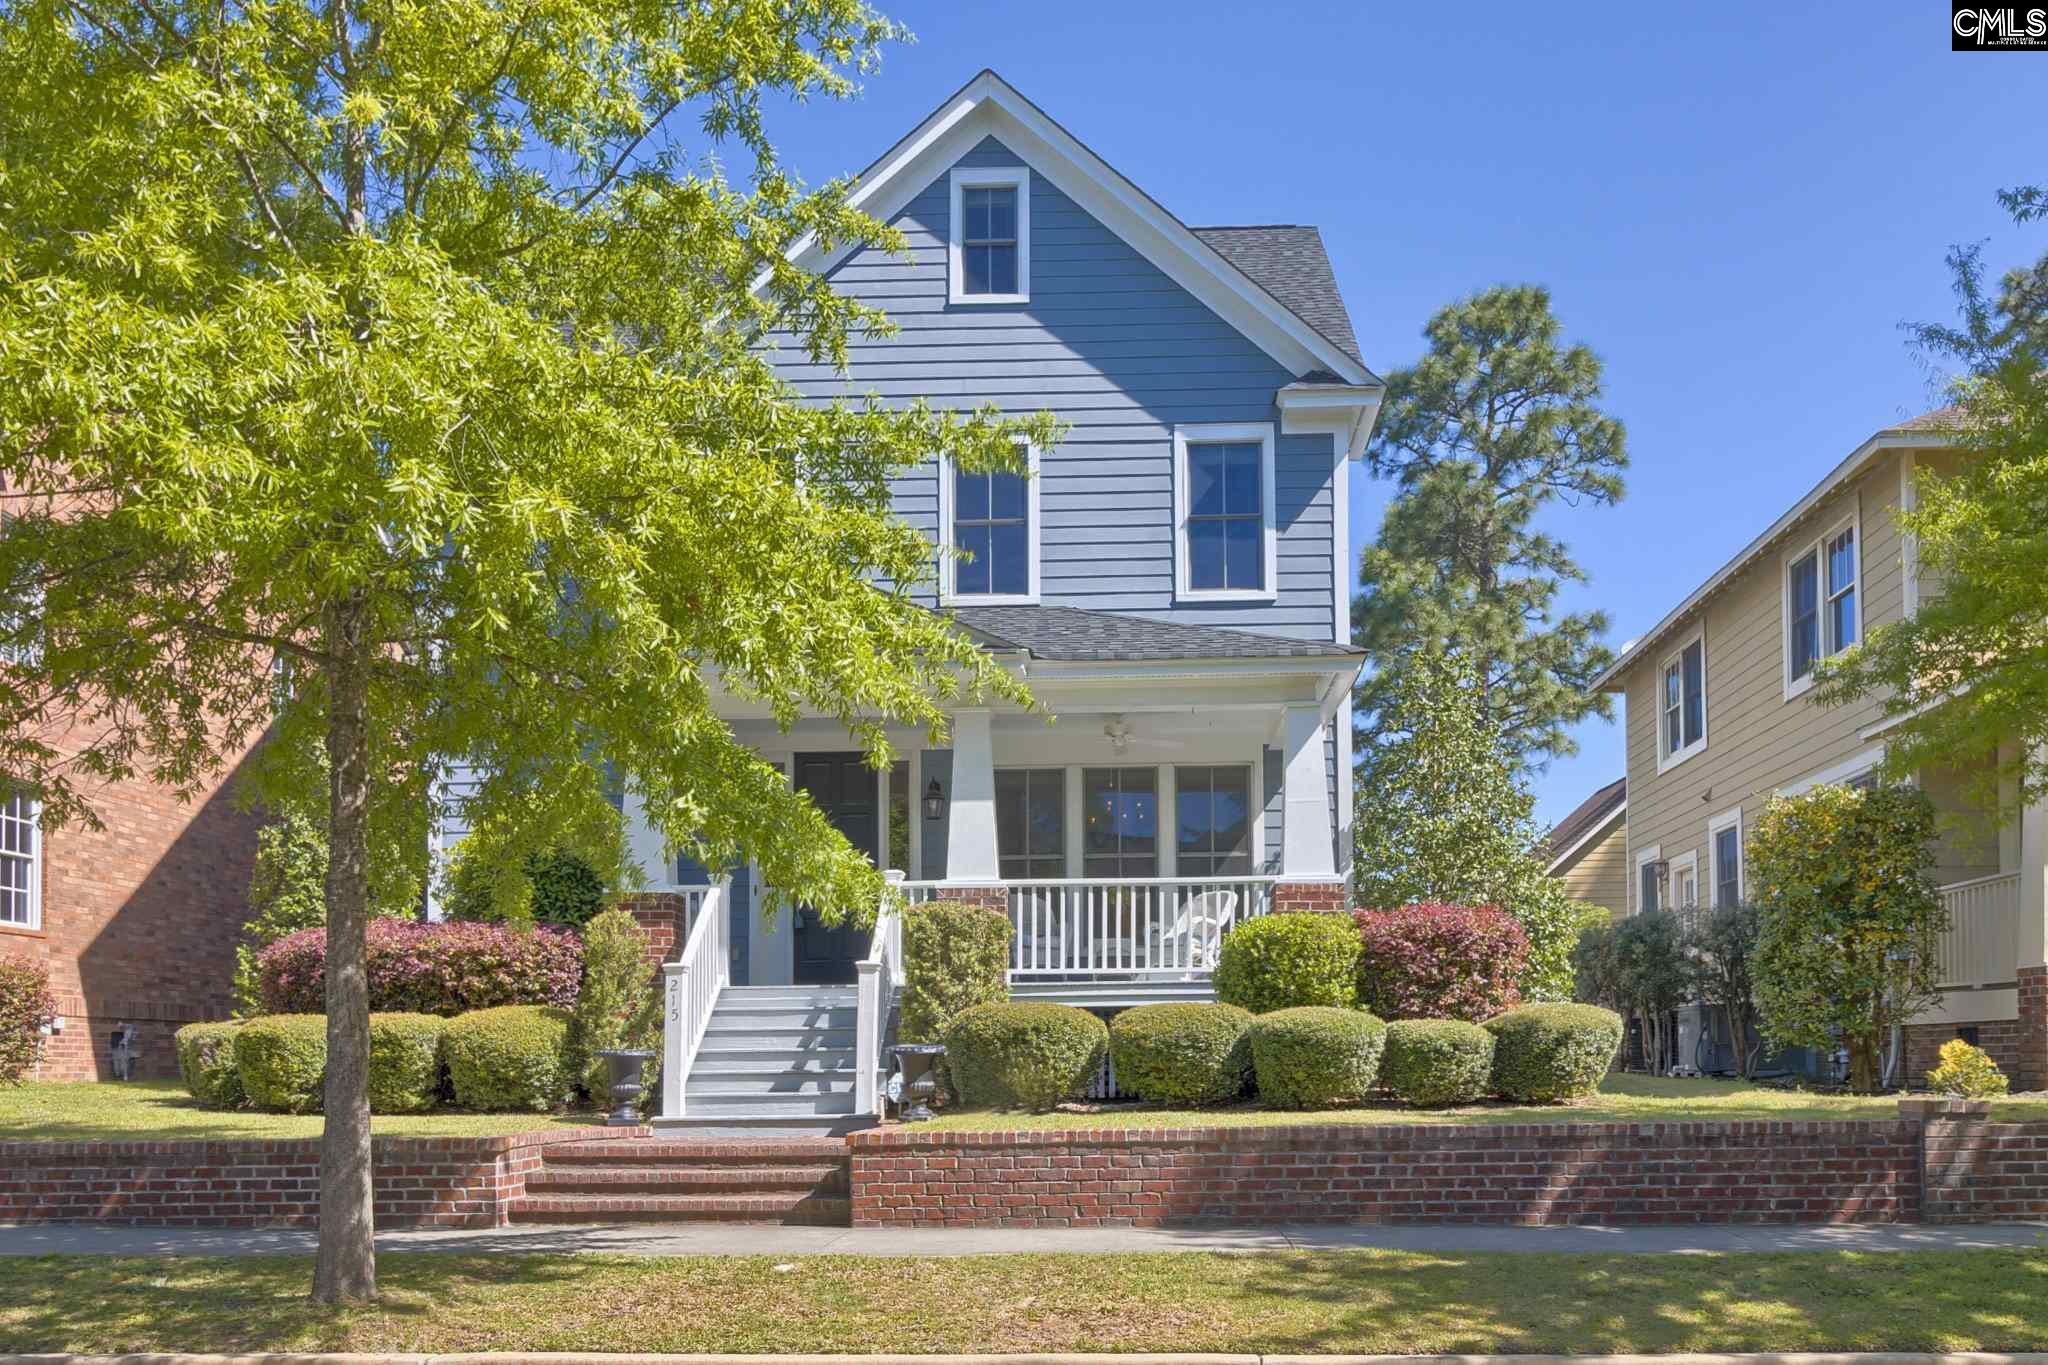 215 Lake Carolina #114 Columbia, SC 29229